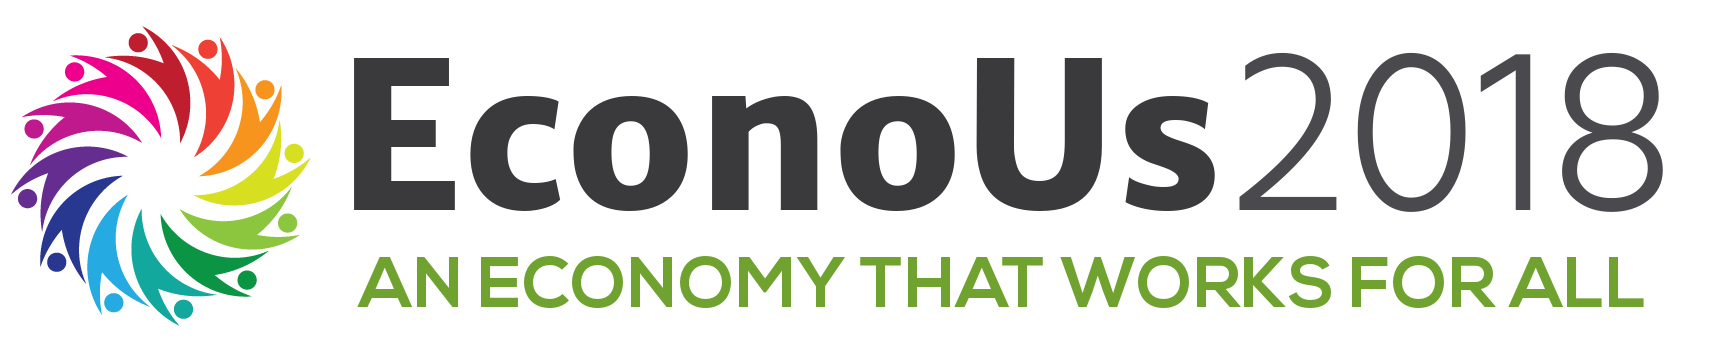 EconoUs2018: An Economy that Works for All